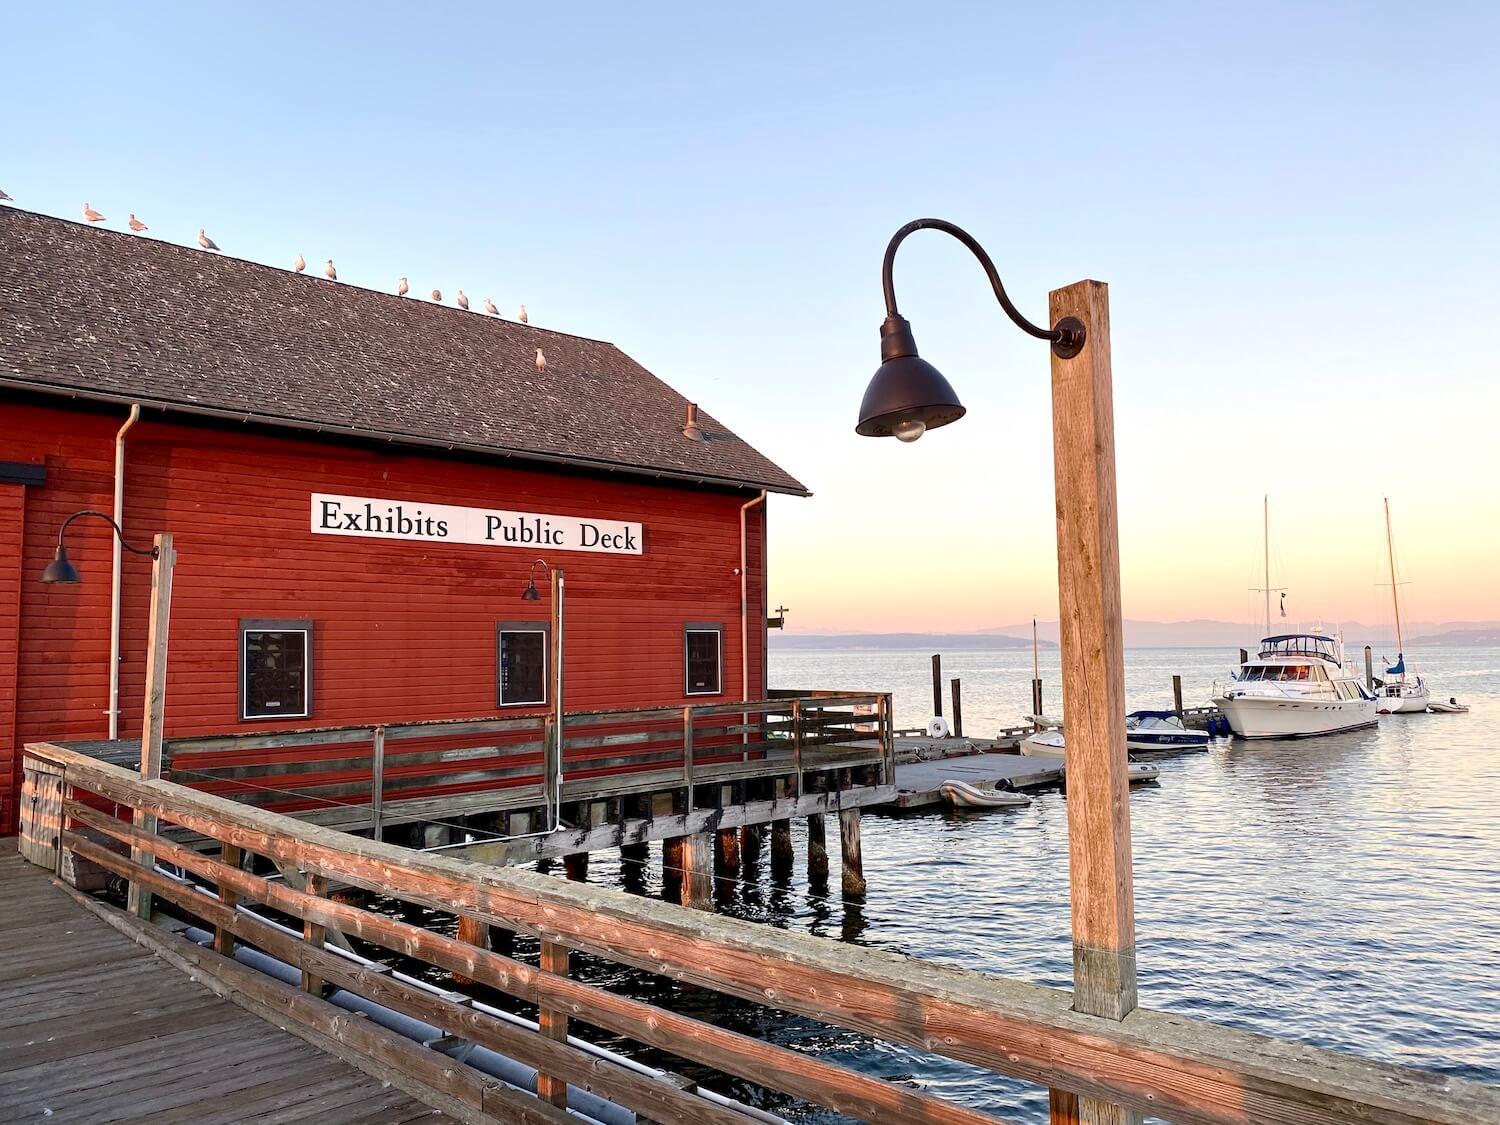 The Coupeville Wharf is a fun thing to do on Whidbey Island. The red wood building is entirely over the water on a dock while a few boats are tied to the pier. In the foreground is a curved metal lamp with a light bulb coming from the fixture. There are a number of seagulls sitting on the point of the wooden roof. The sunset is casting a pinkish yellow glow on the hills in the background.